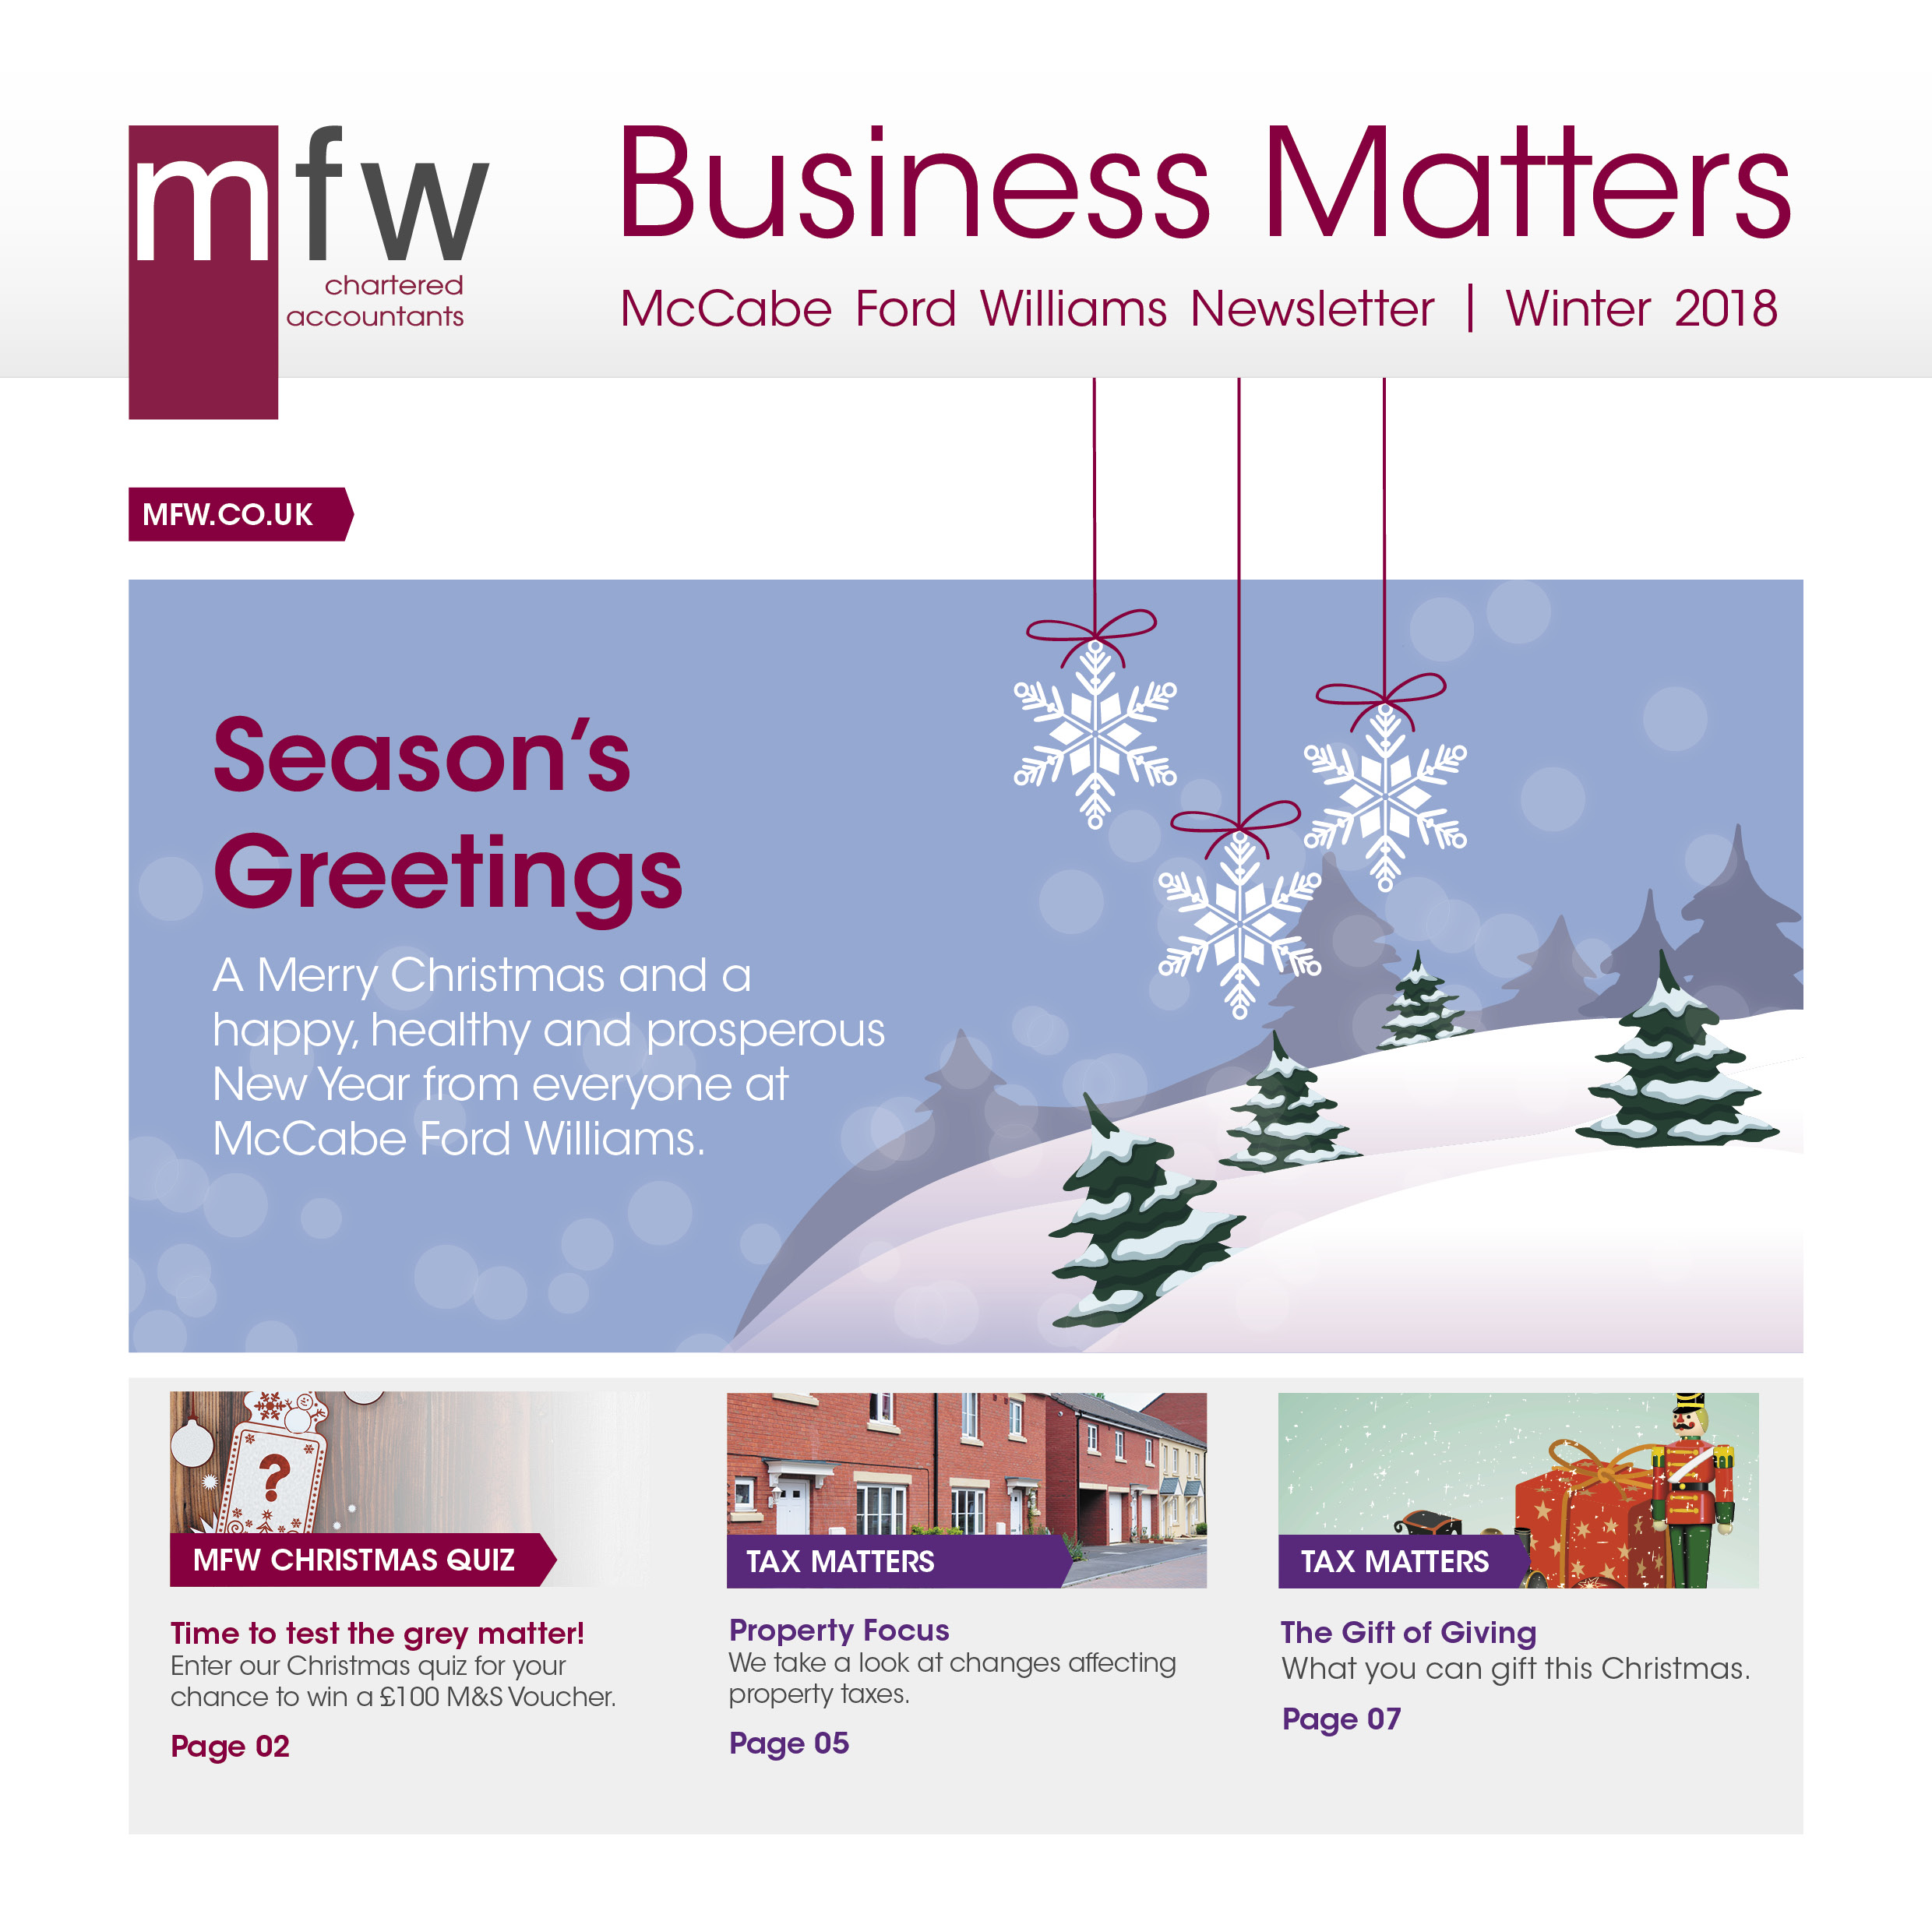 MFW Business Matters winter 2018